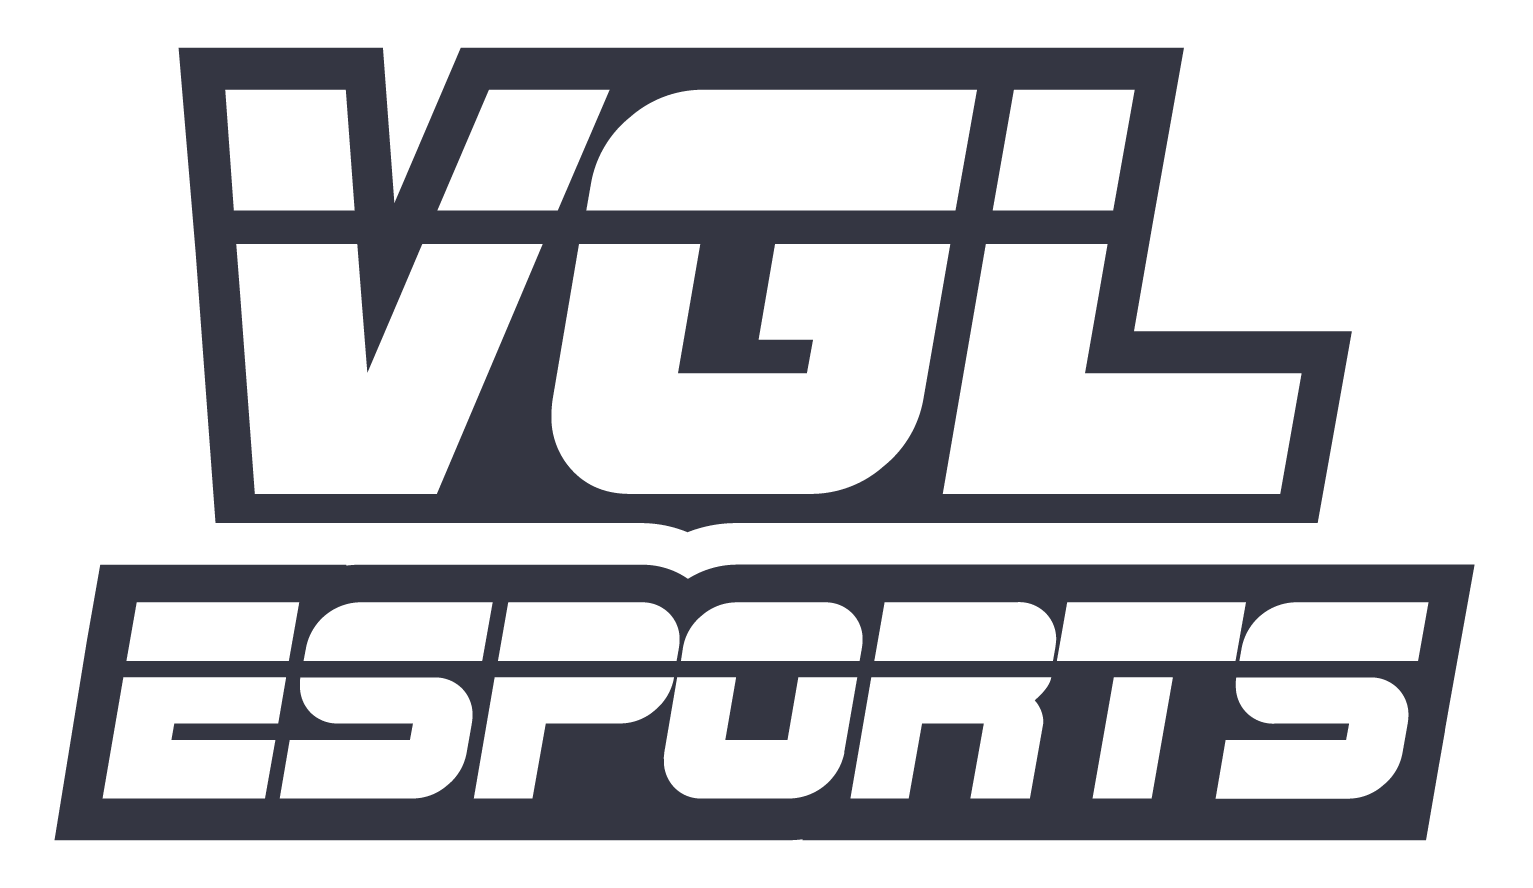 VGL ESPORTS IKE Virtual Gaming Leagues